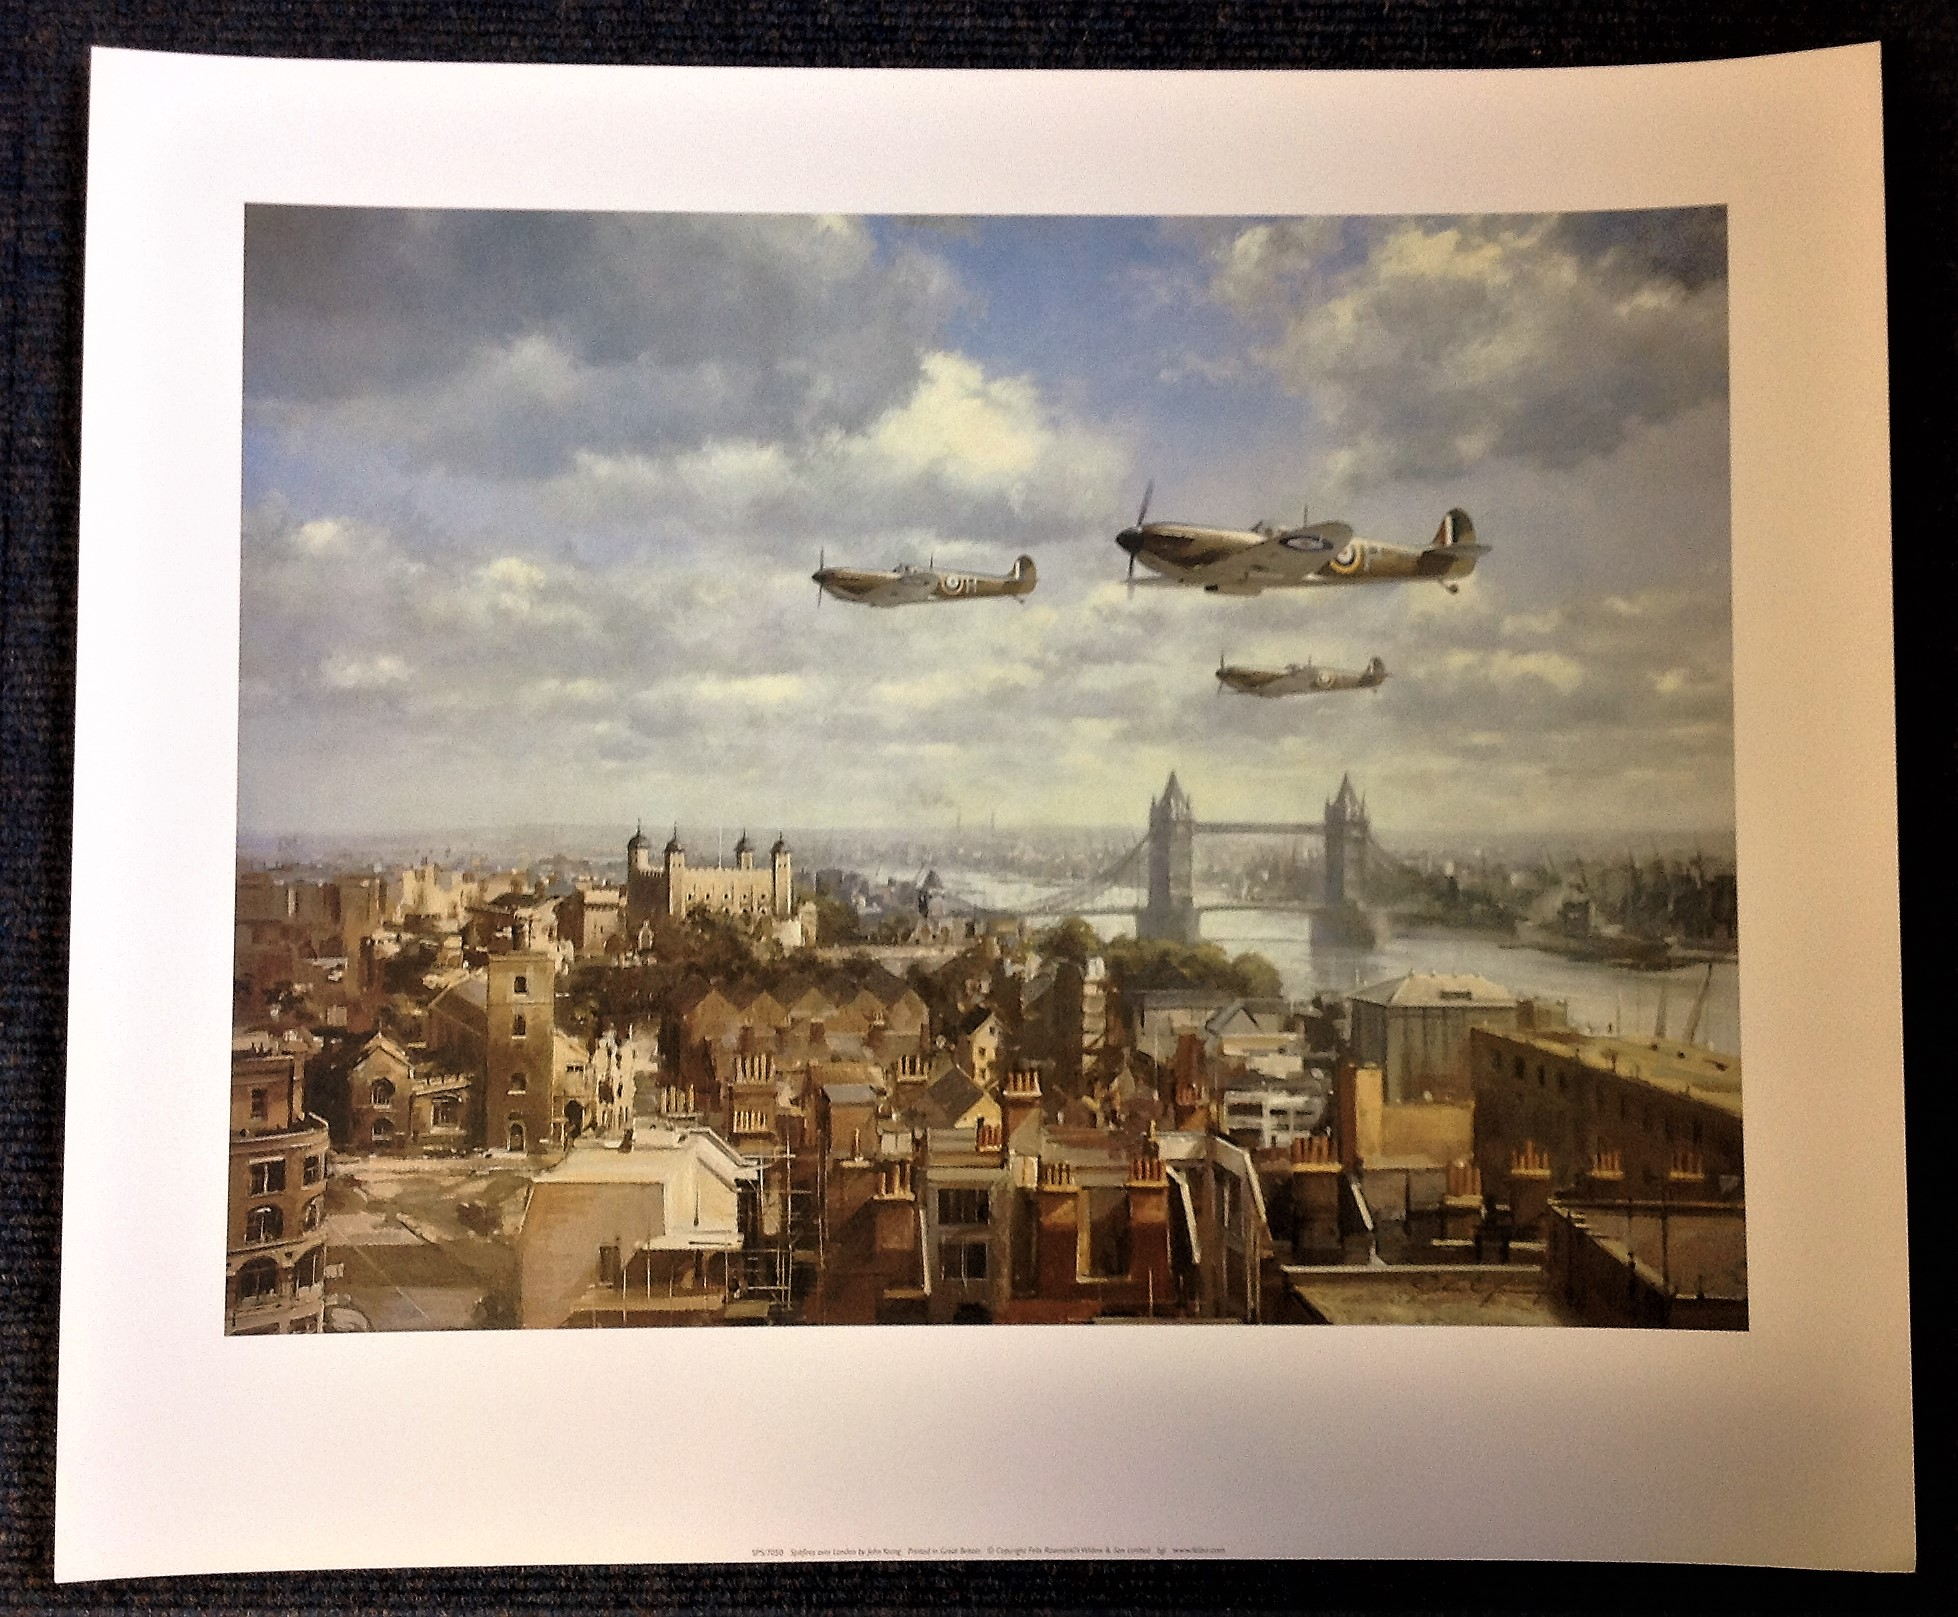 Battle of Britain 20x24 print titled Spitfires over London by the artist John Young. Good Condition.